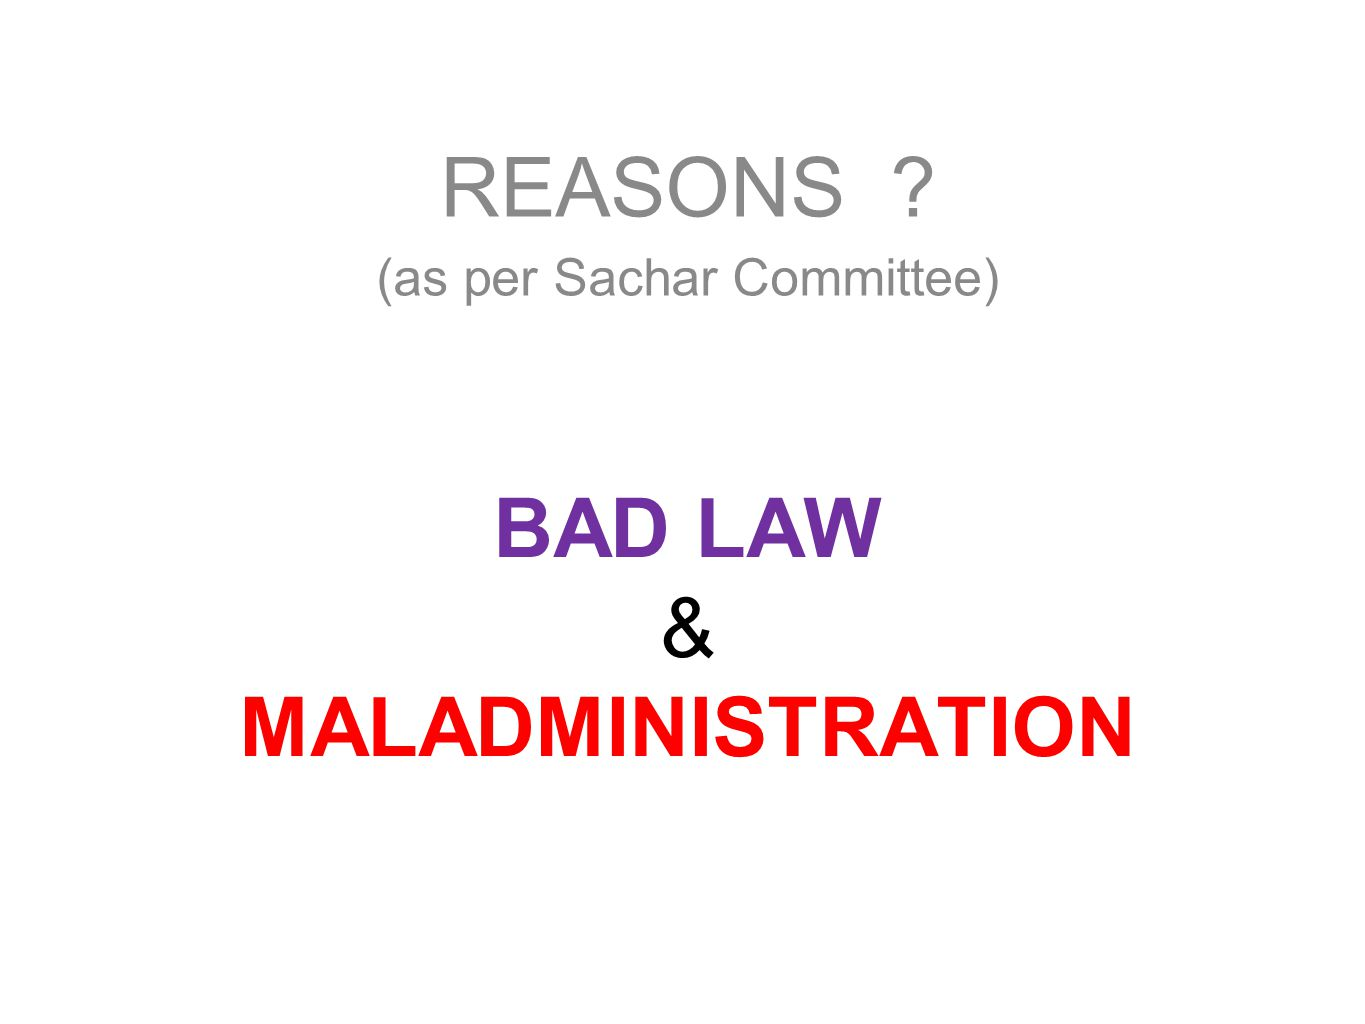 BAD LAW & MALADMINISTRATION REASONS ? (as per Sachar Committee)